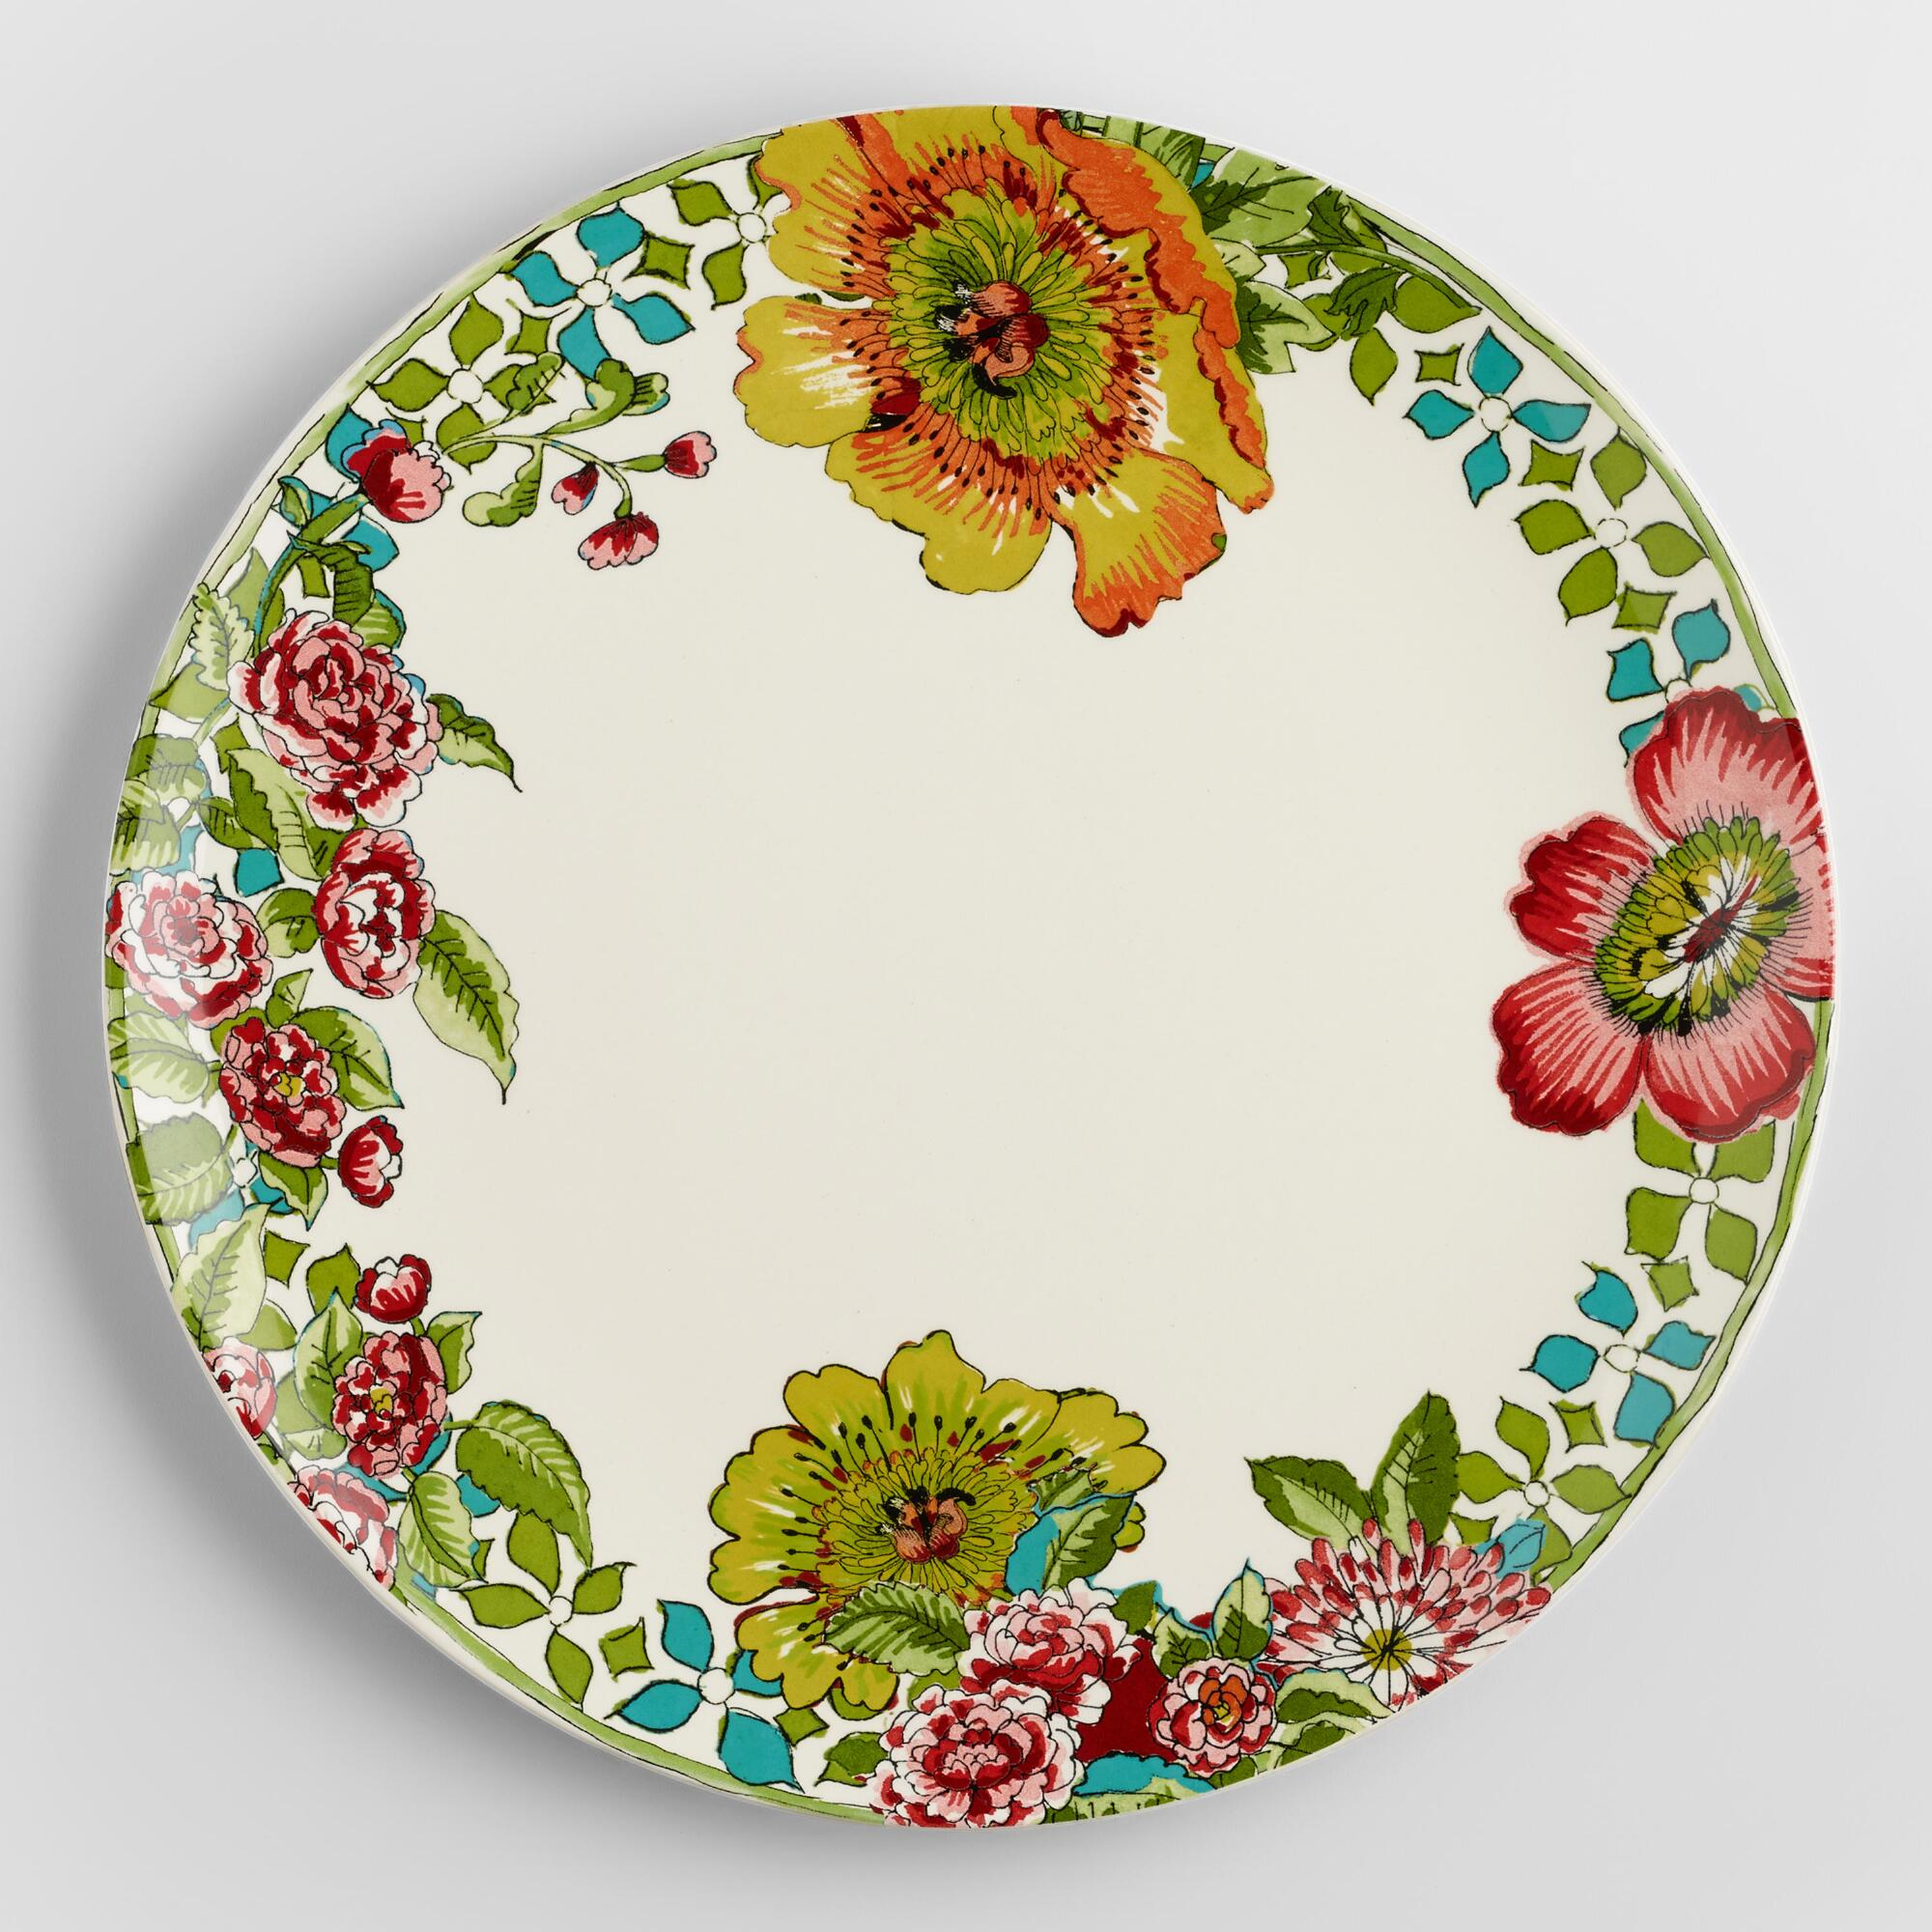 Nomad dinner plates set of world market